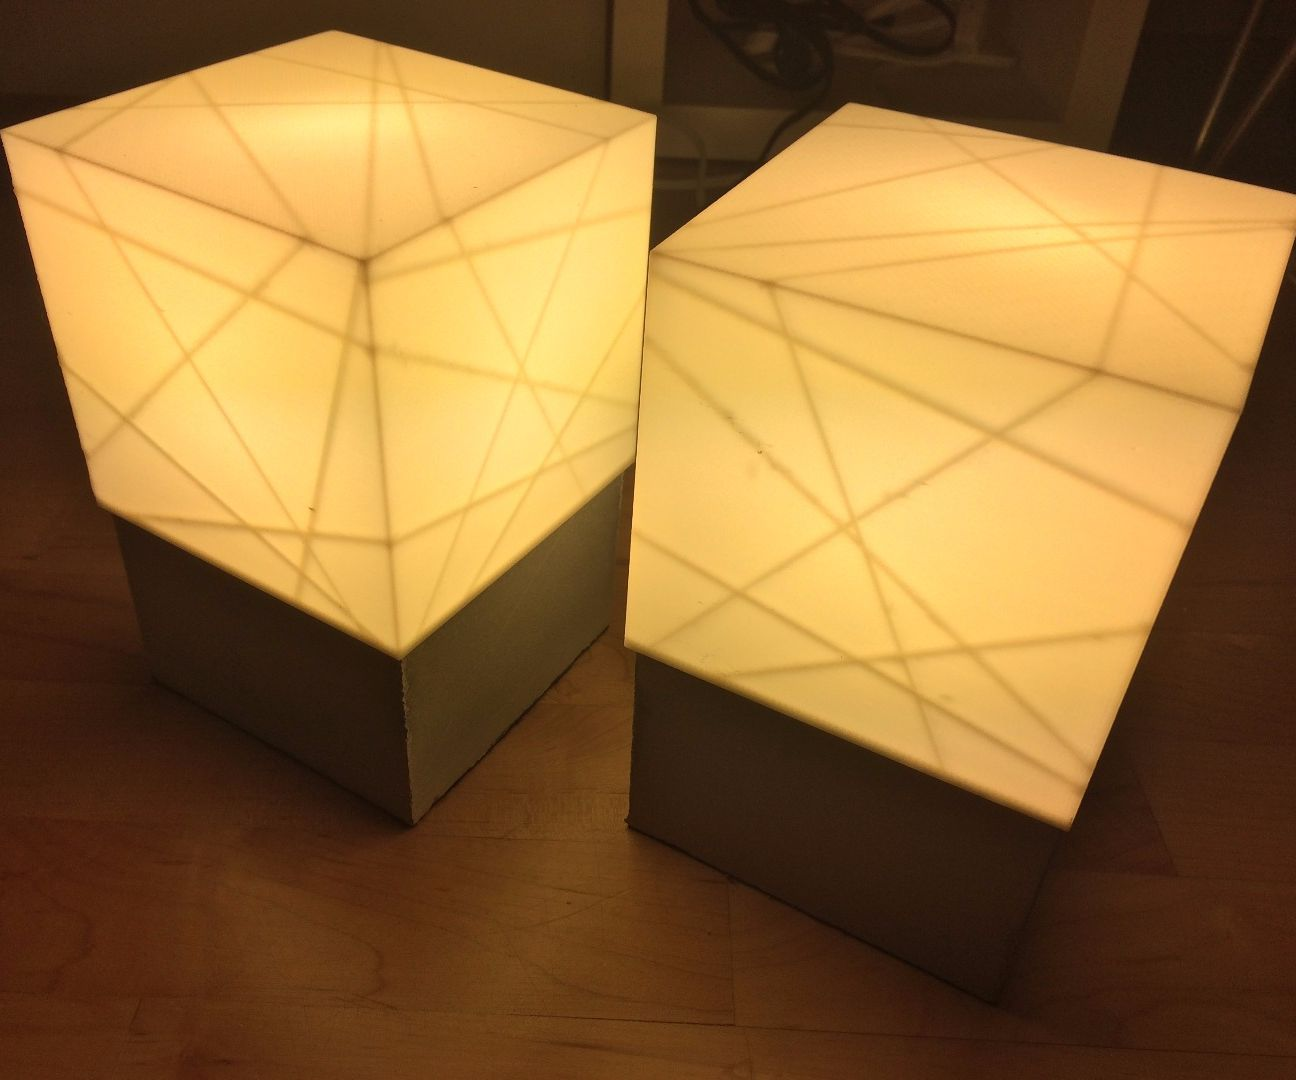 Concrete lamp base with 3D printed shade